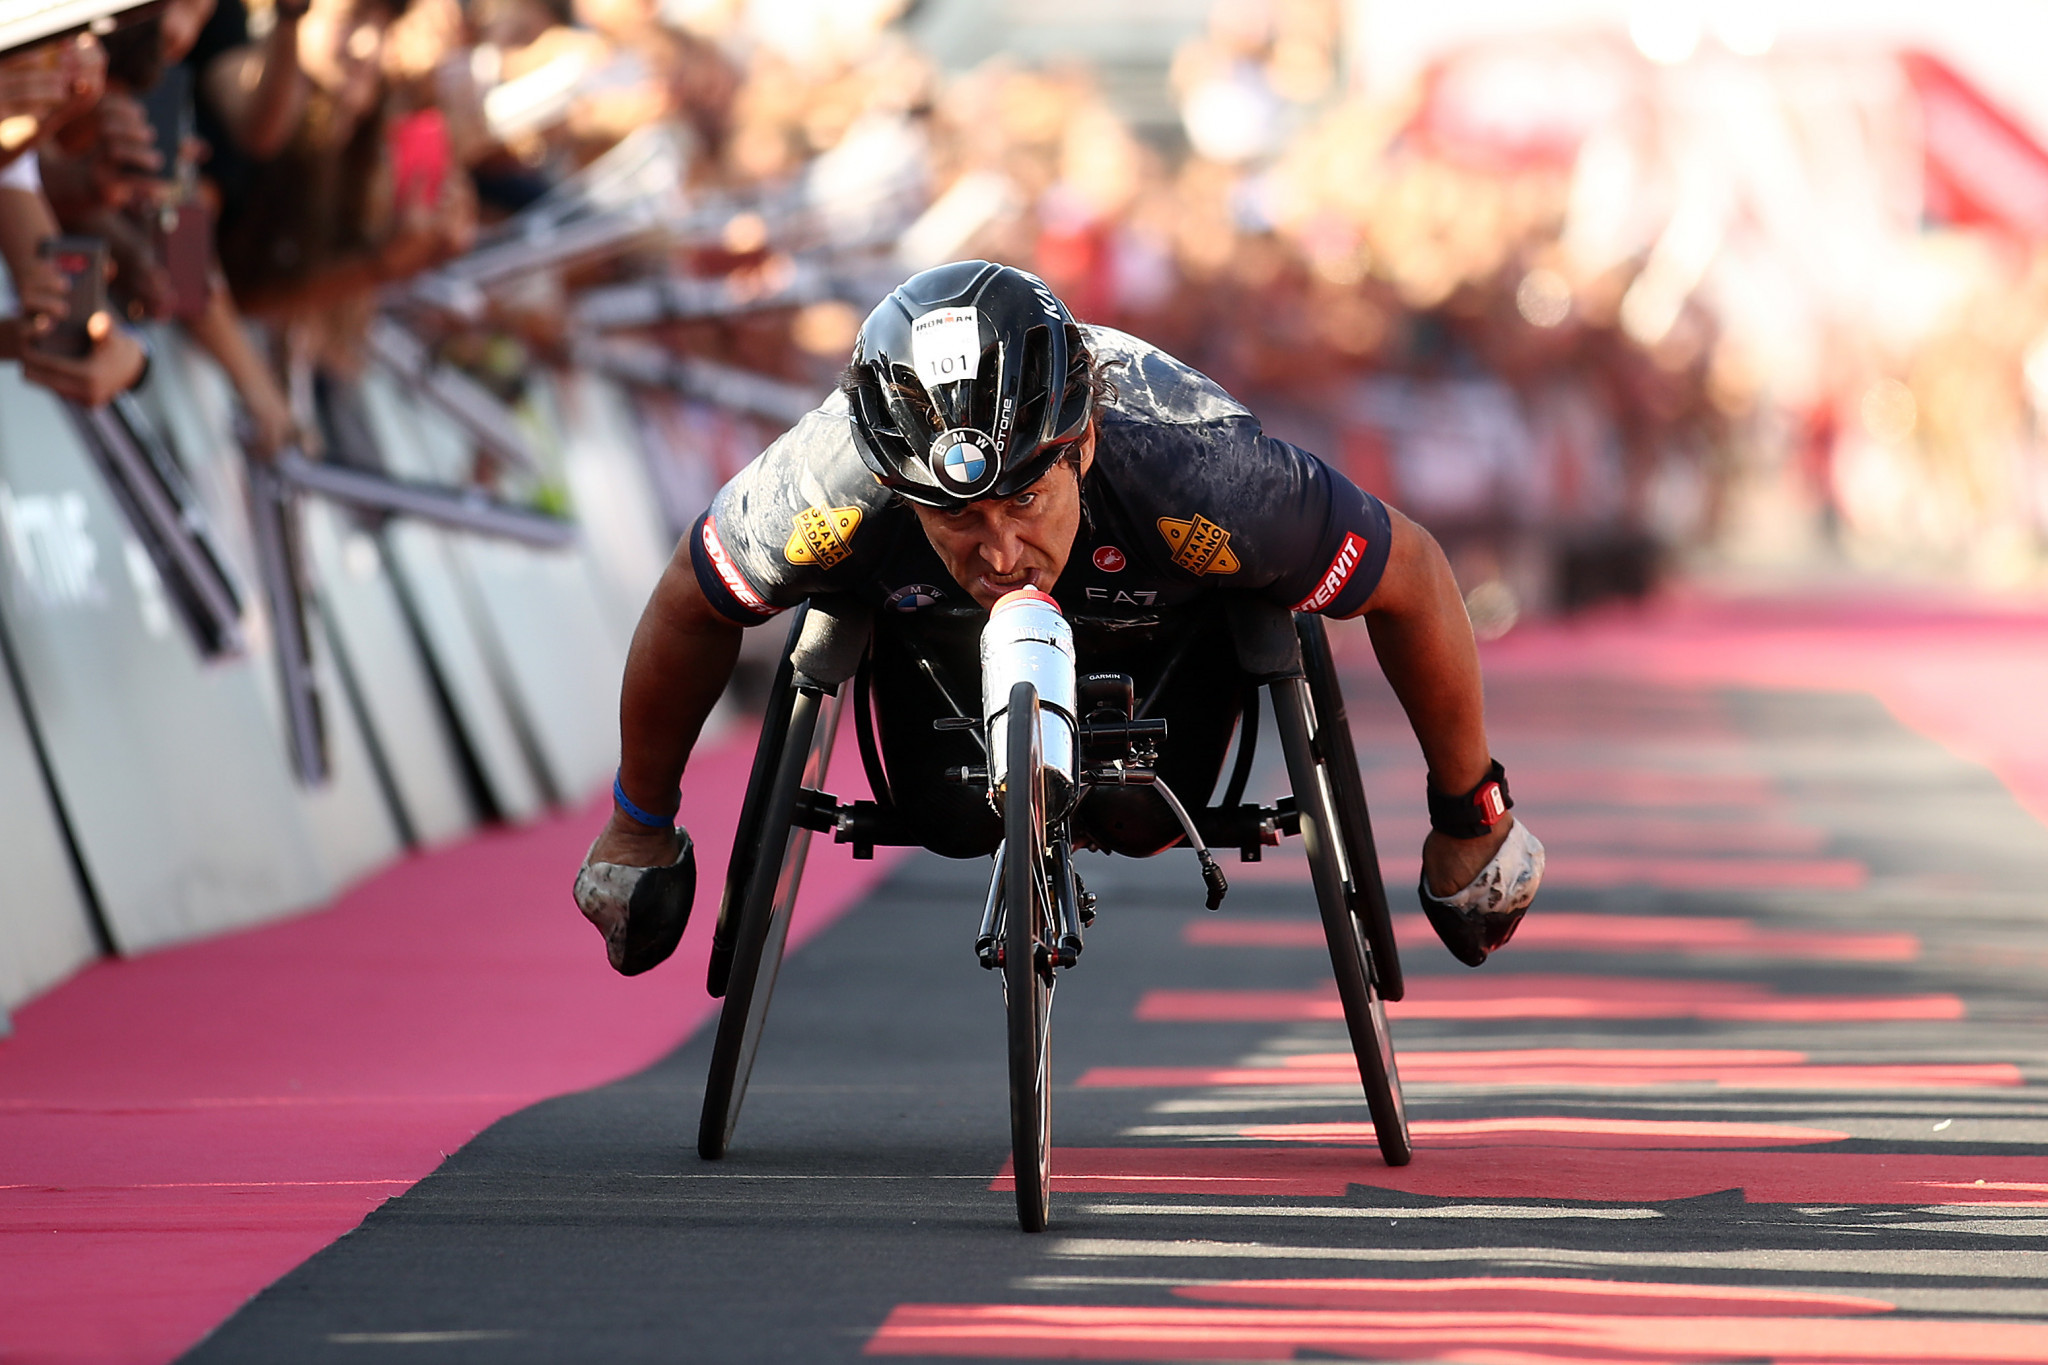 Four-time Paralympic gold medallist Zanardi in serious but stable condition following handcycle crash